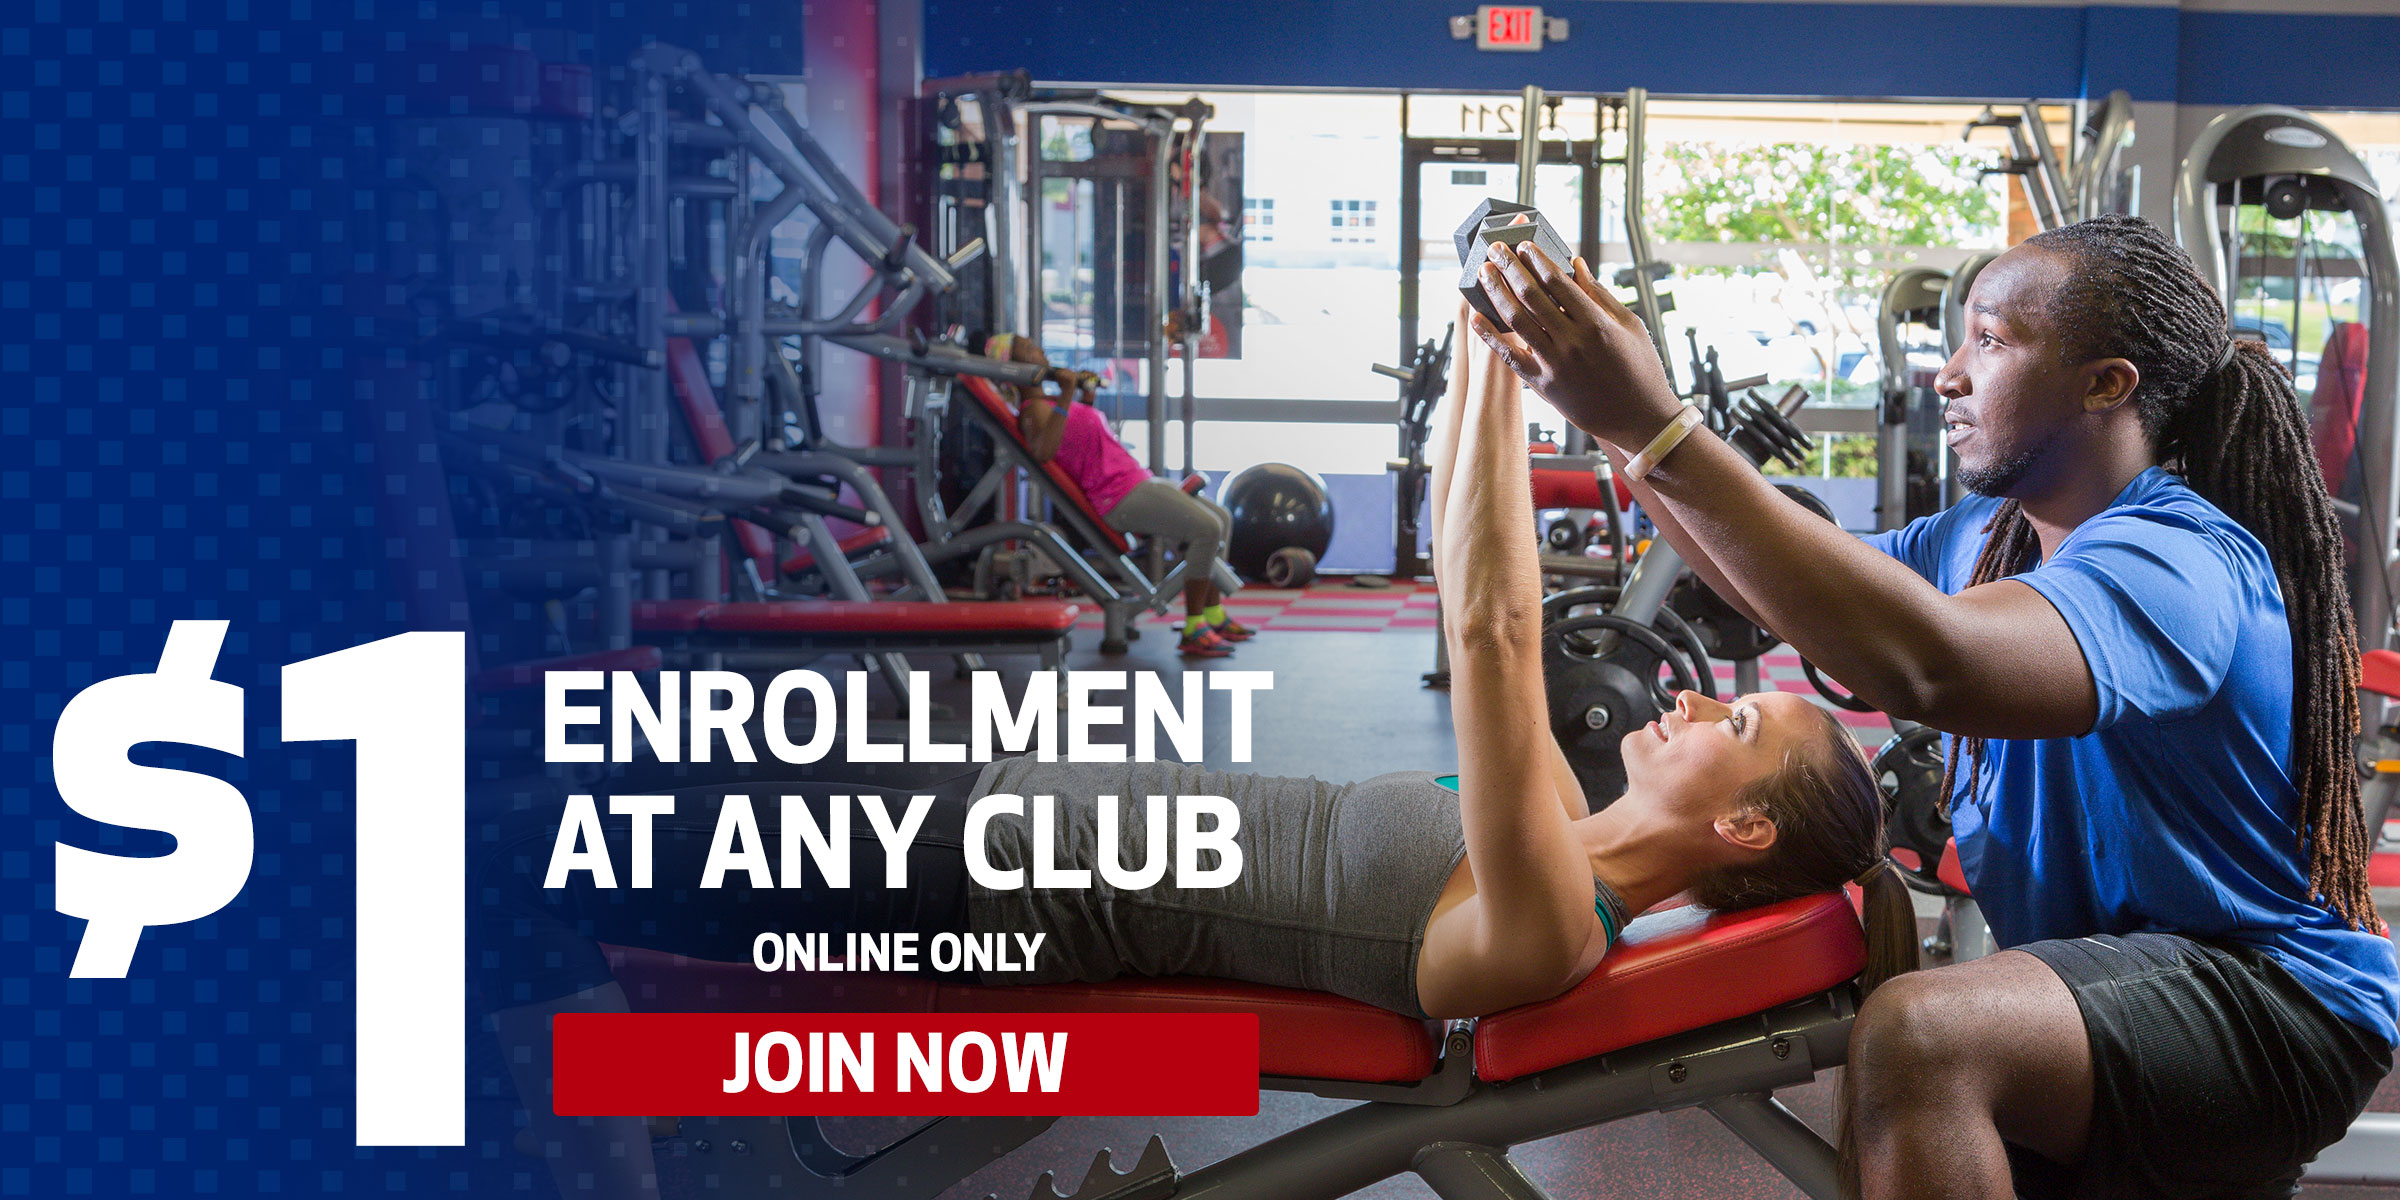 1 Dollar Enrollment at Any Club (Online Only)